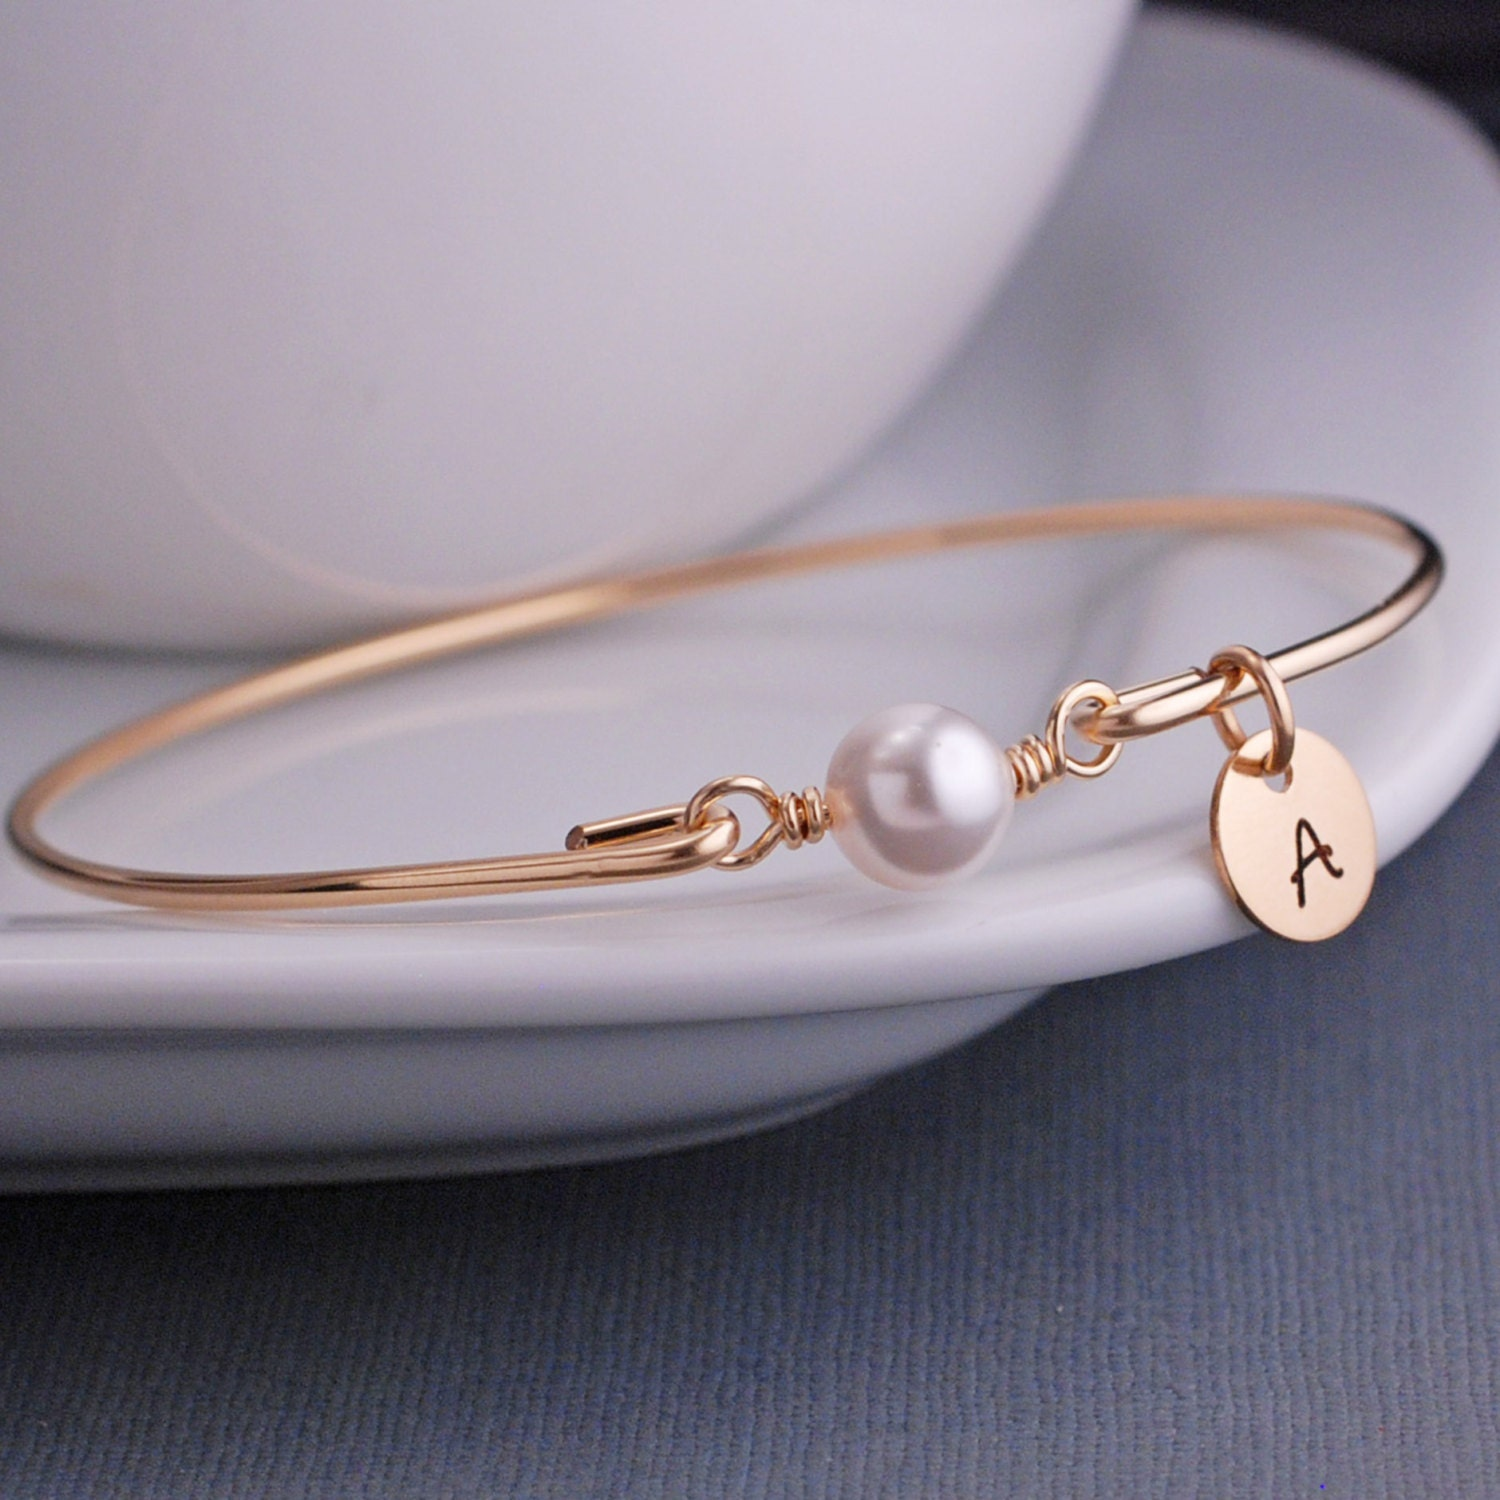 Gold Jewelry Bracelets: Gold Bangle Bracelet White Pearl Bracelet Simple Gold